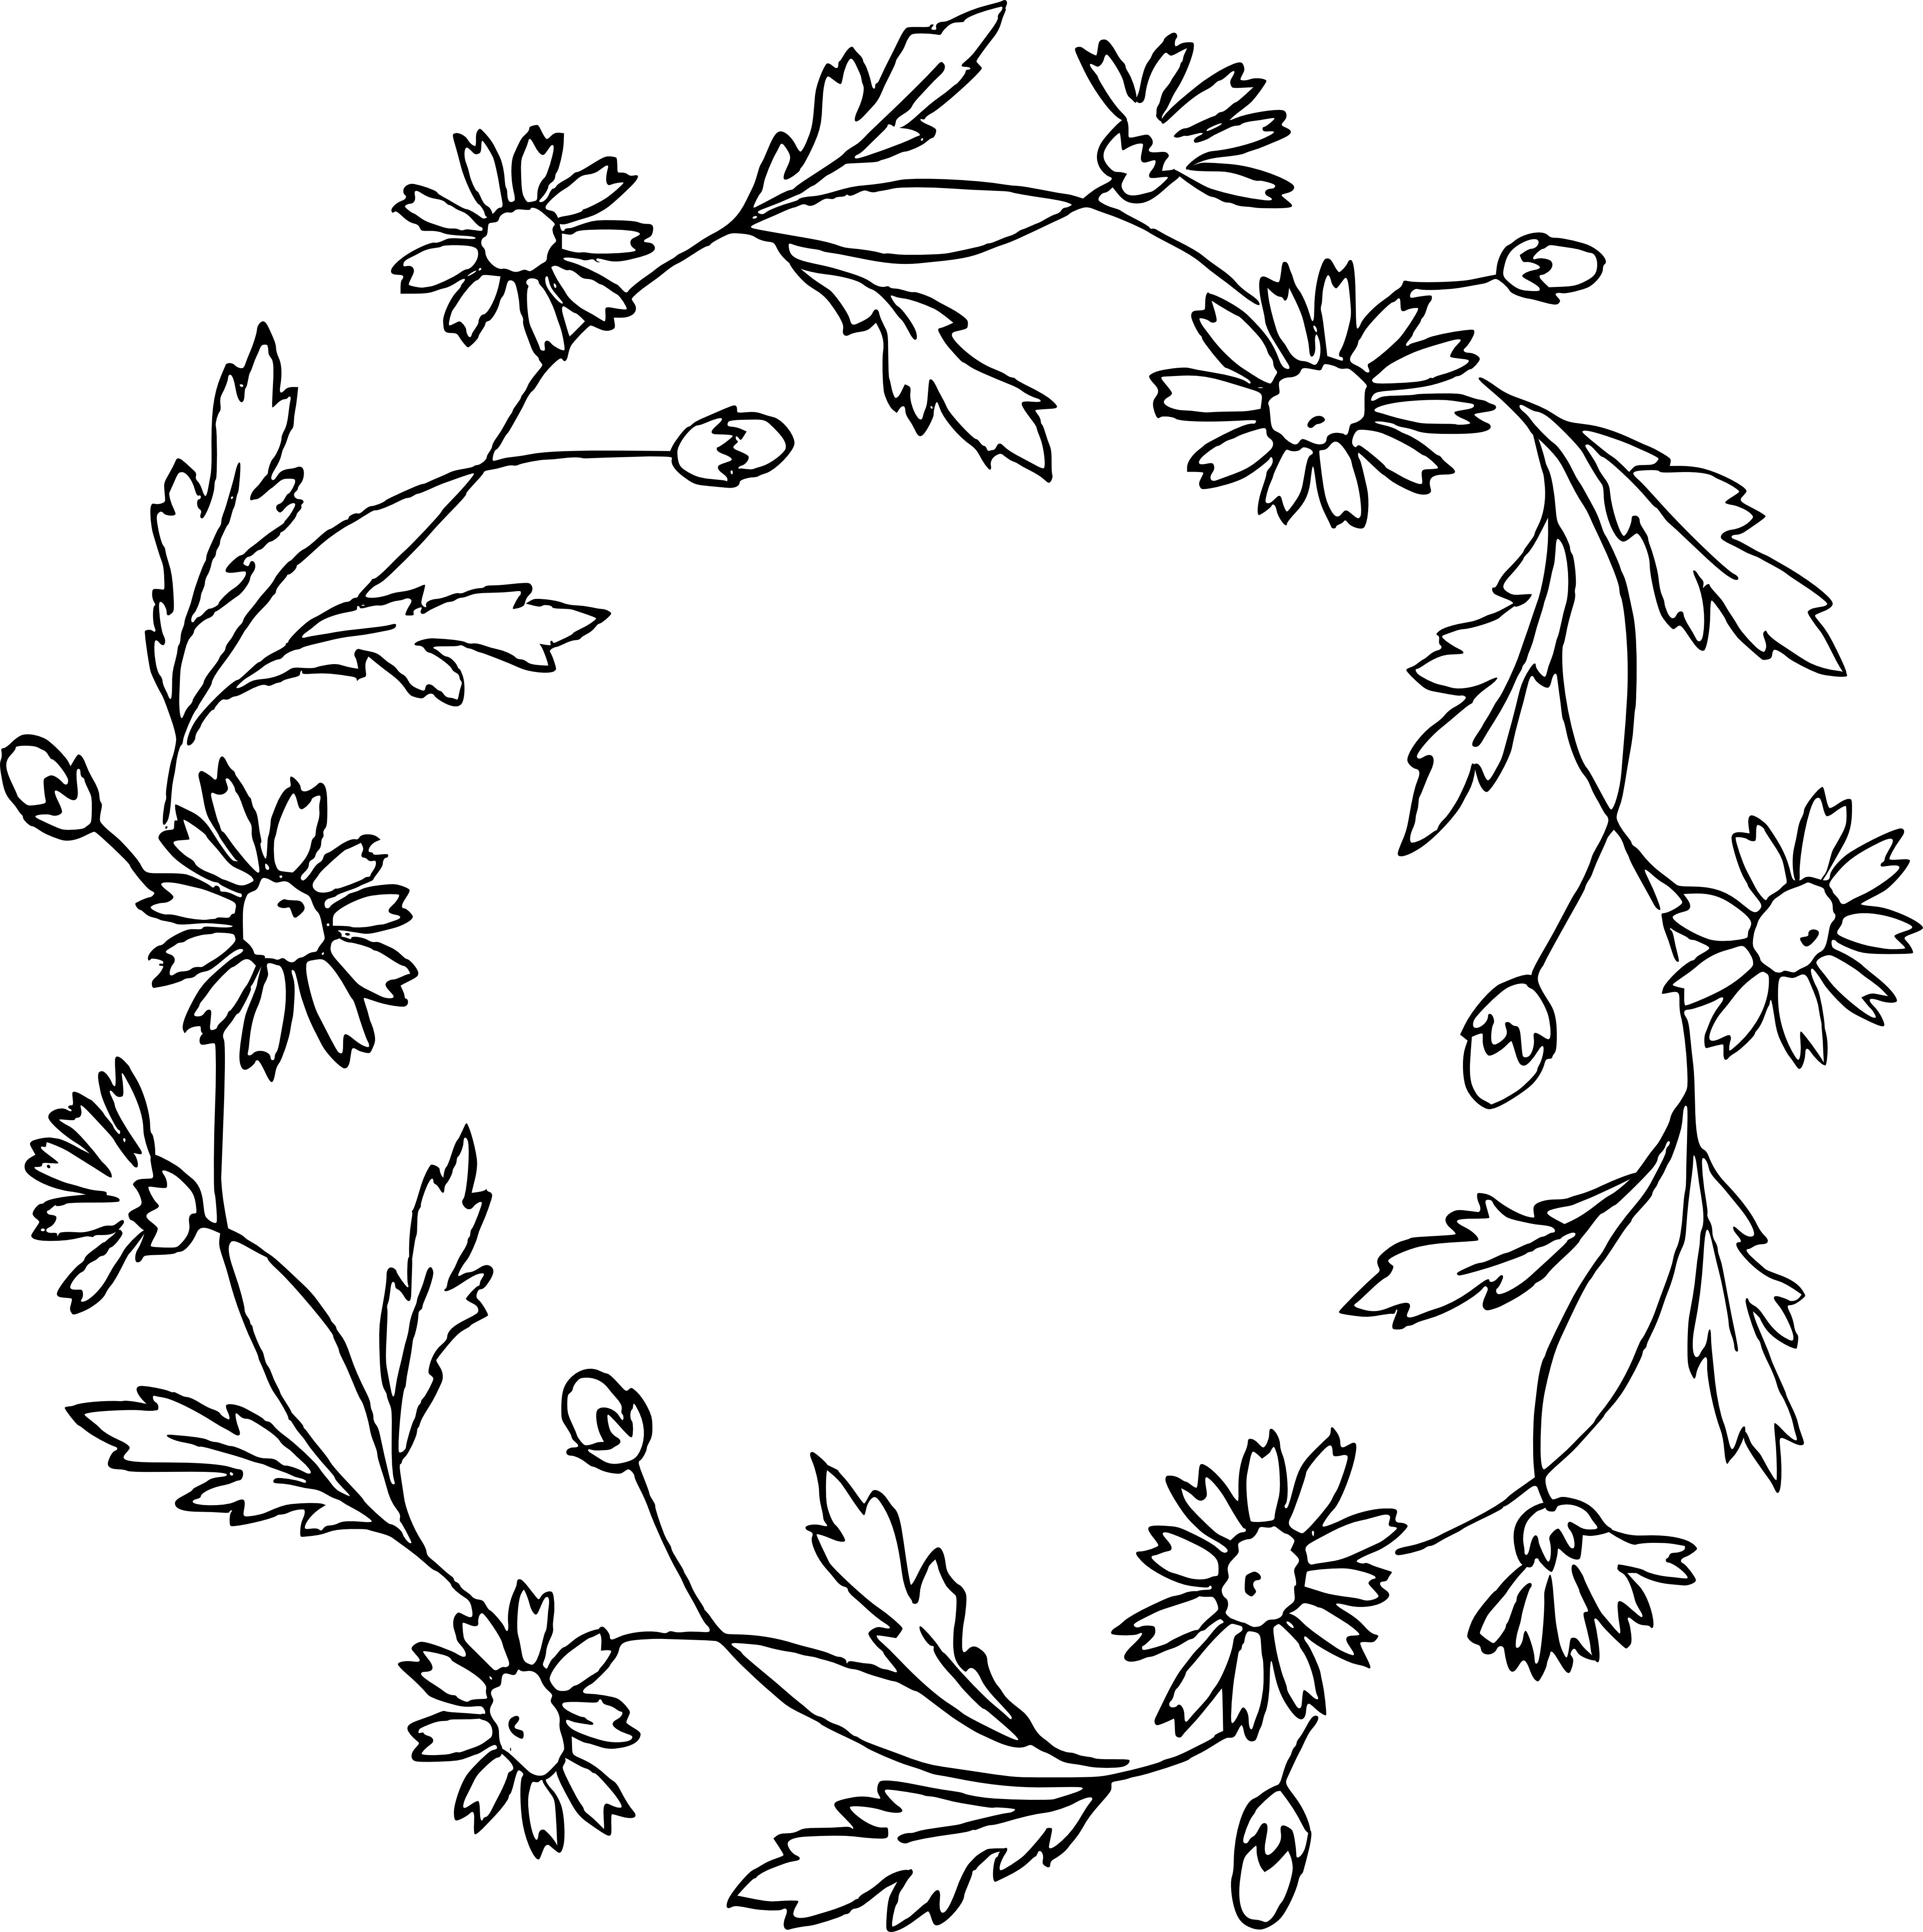 hight resolution of daisy flower cip art silhouette floral wreath clip art vector images 4686 4707